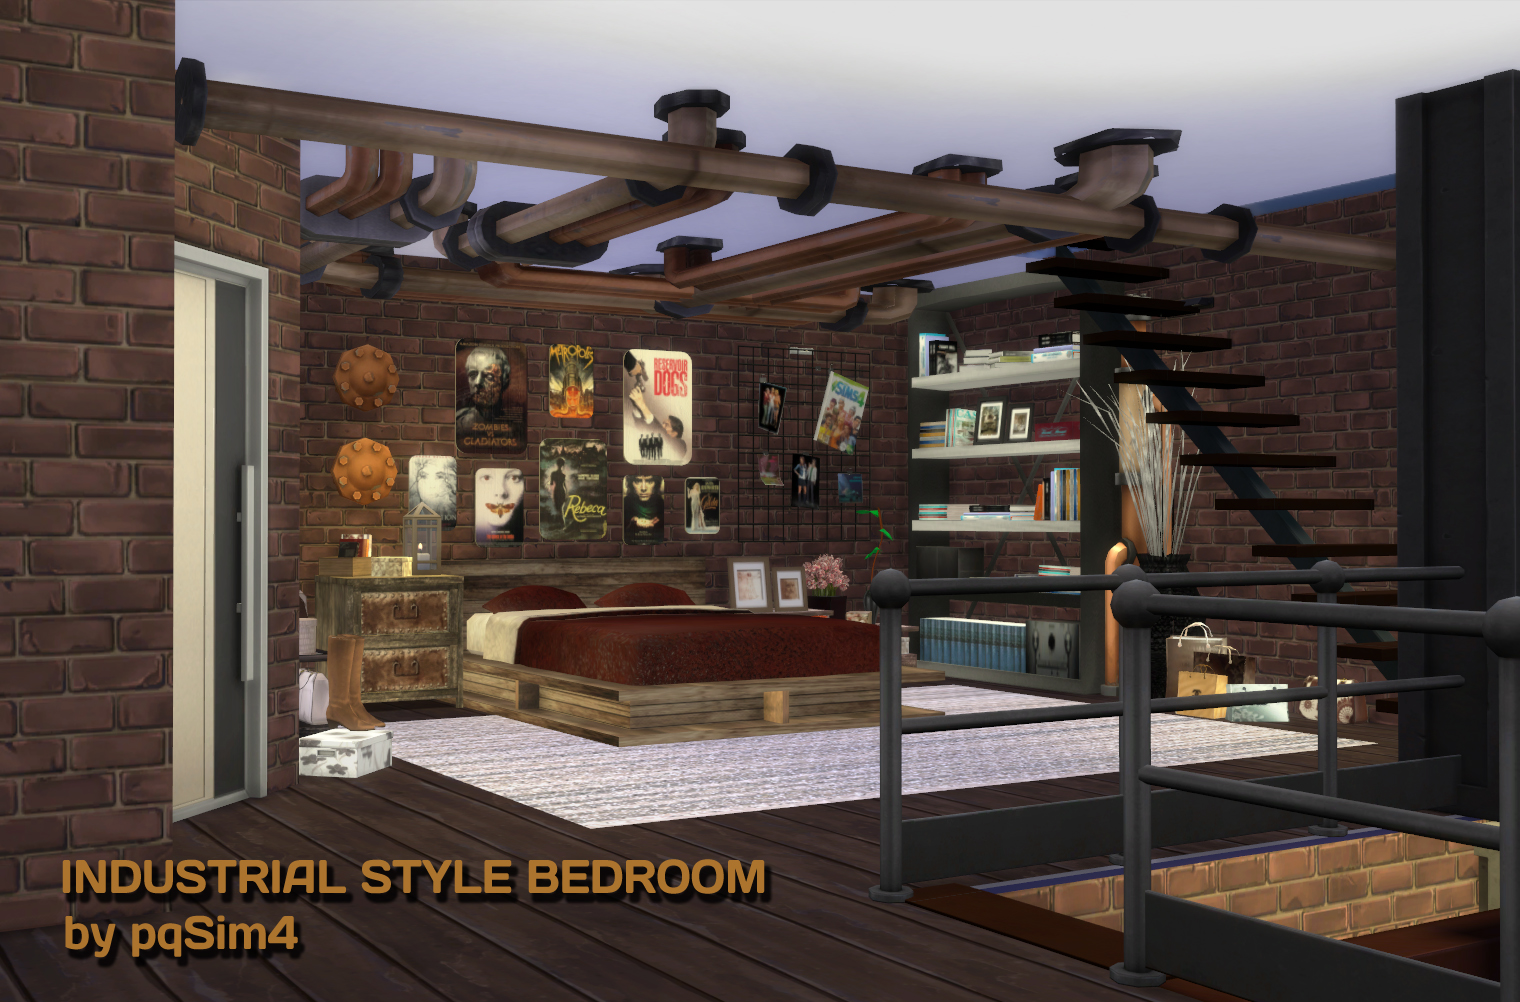 my sims 4 blog industrial style bedroom by pqsim4